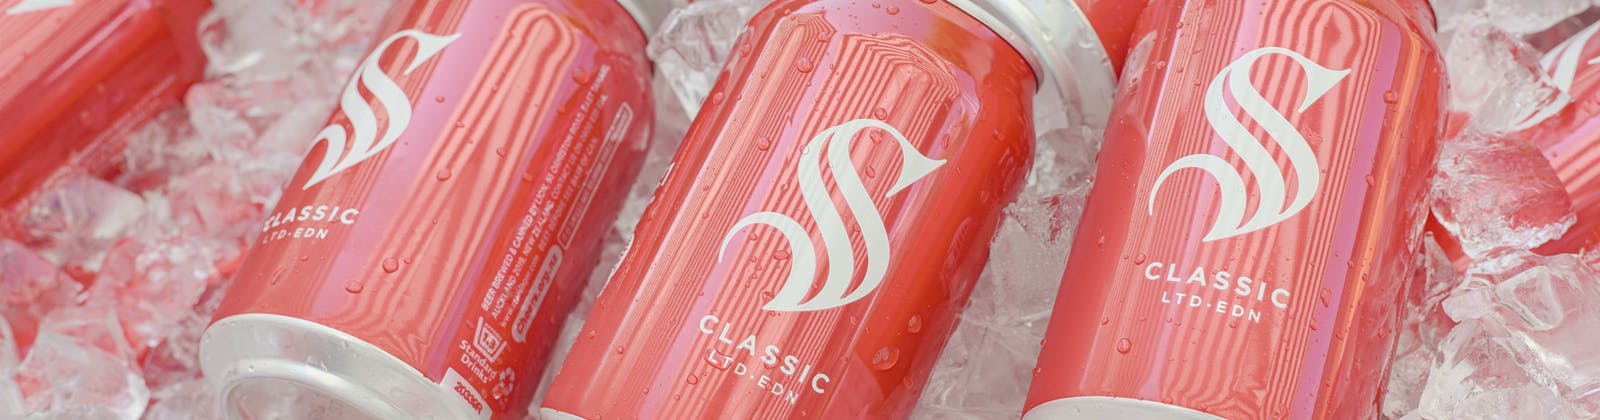 steinlager red cans